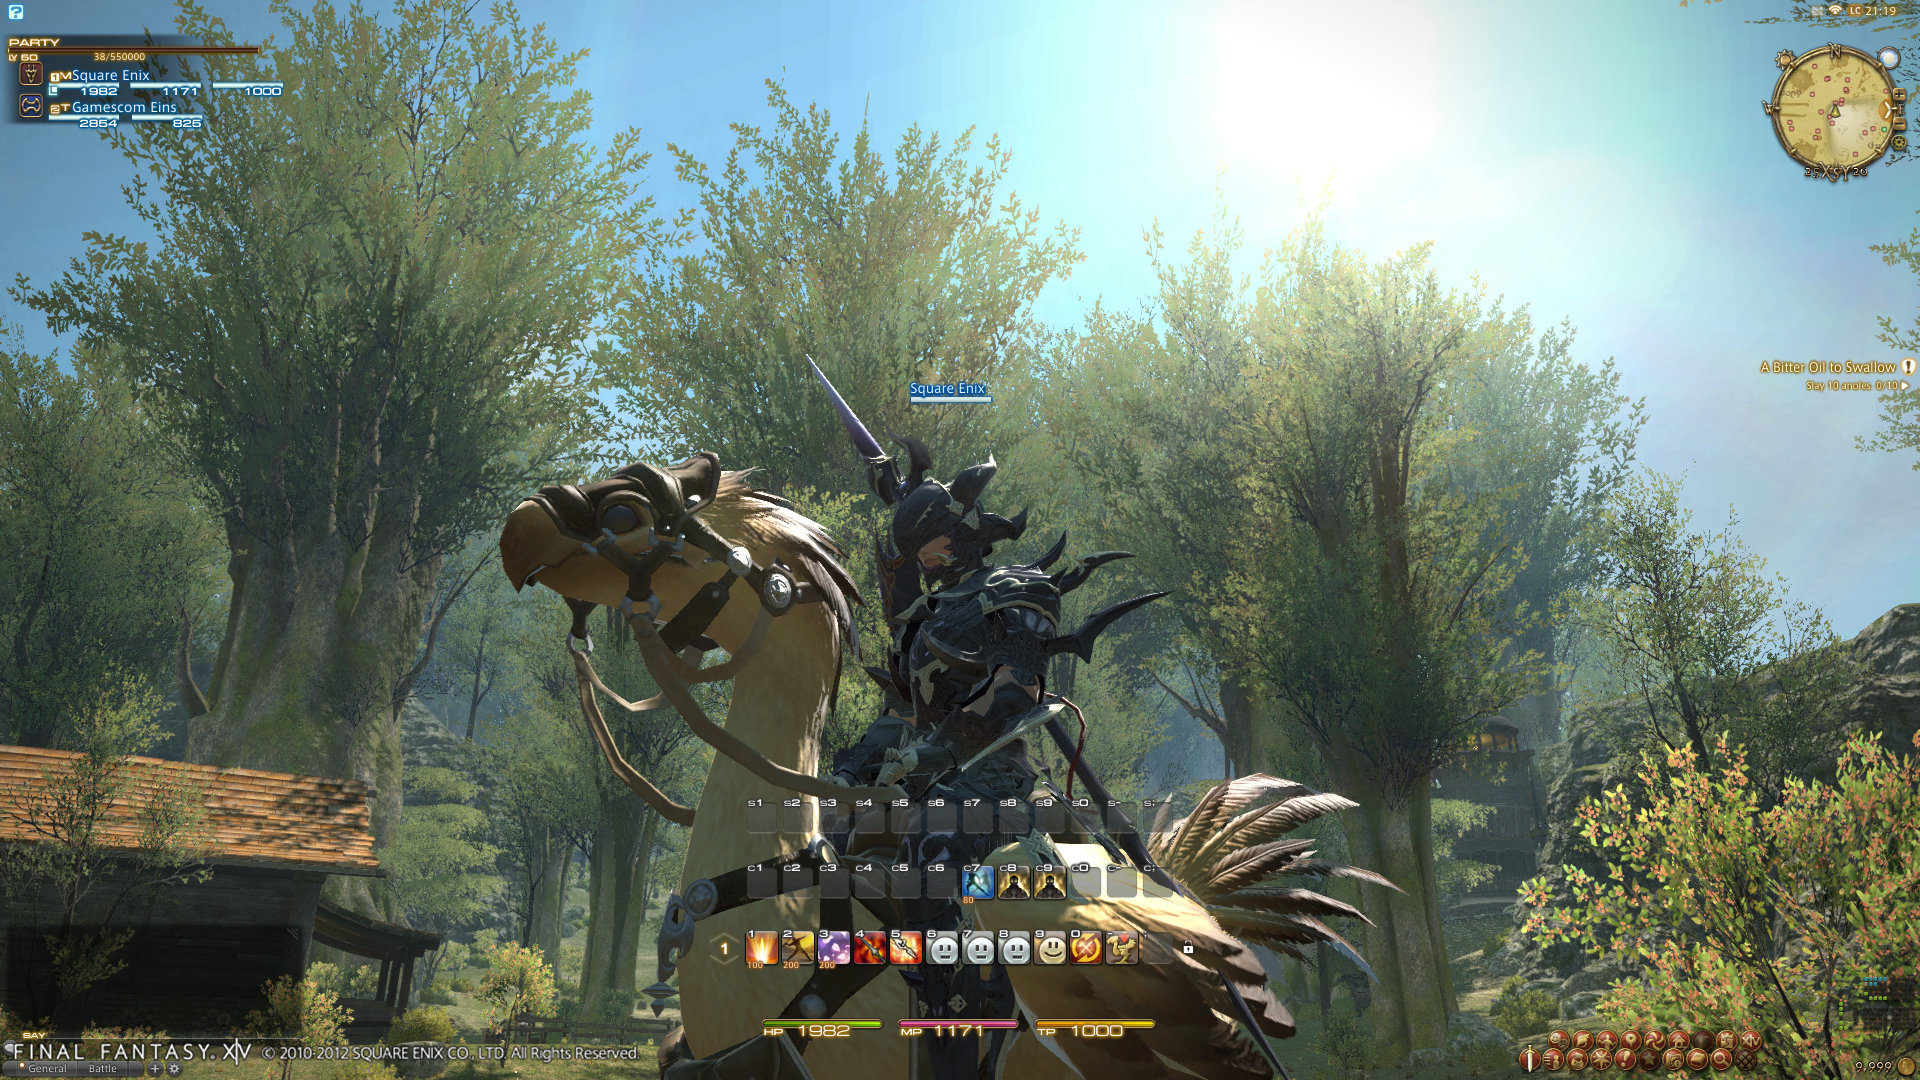 Final Fantasy Xiv A Realm Reborn Wallpaper Images Pictures   Becuo 1920x1080